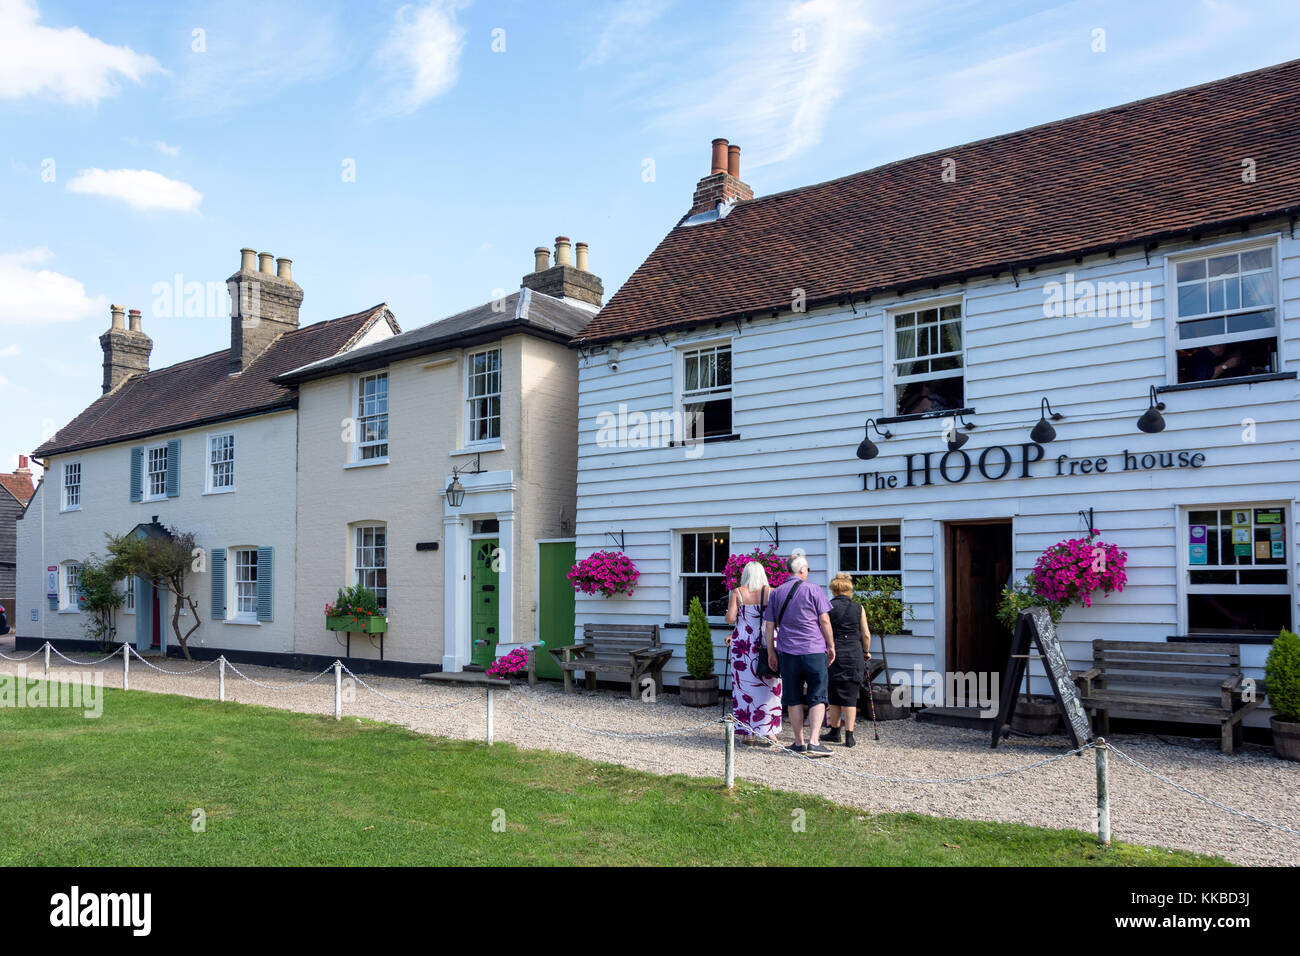 15th century The Hoop free house, High Street, Stock, Essex, England, United Kingdom - Stock Image